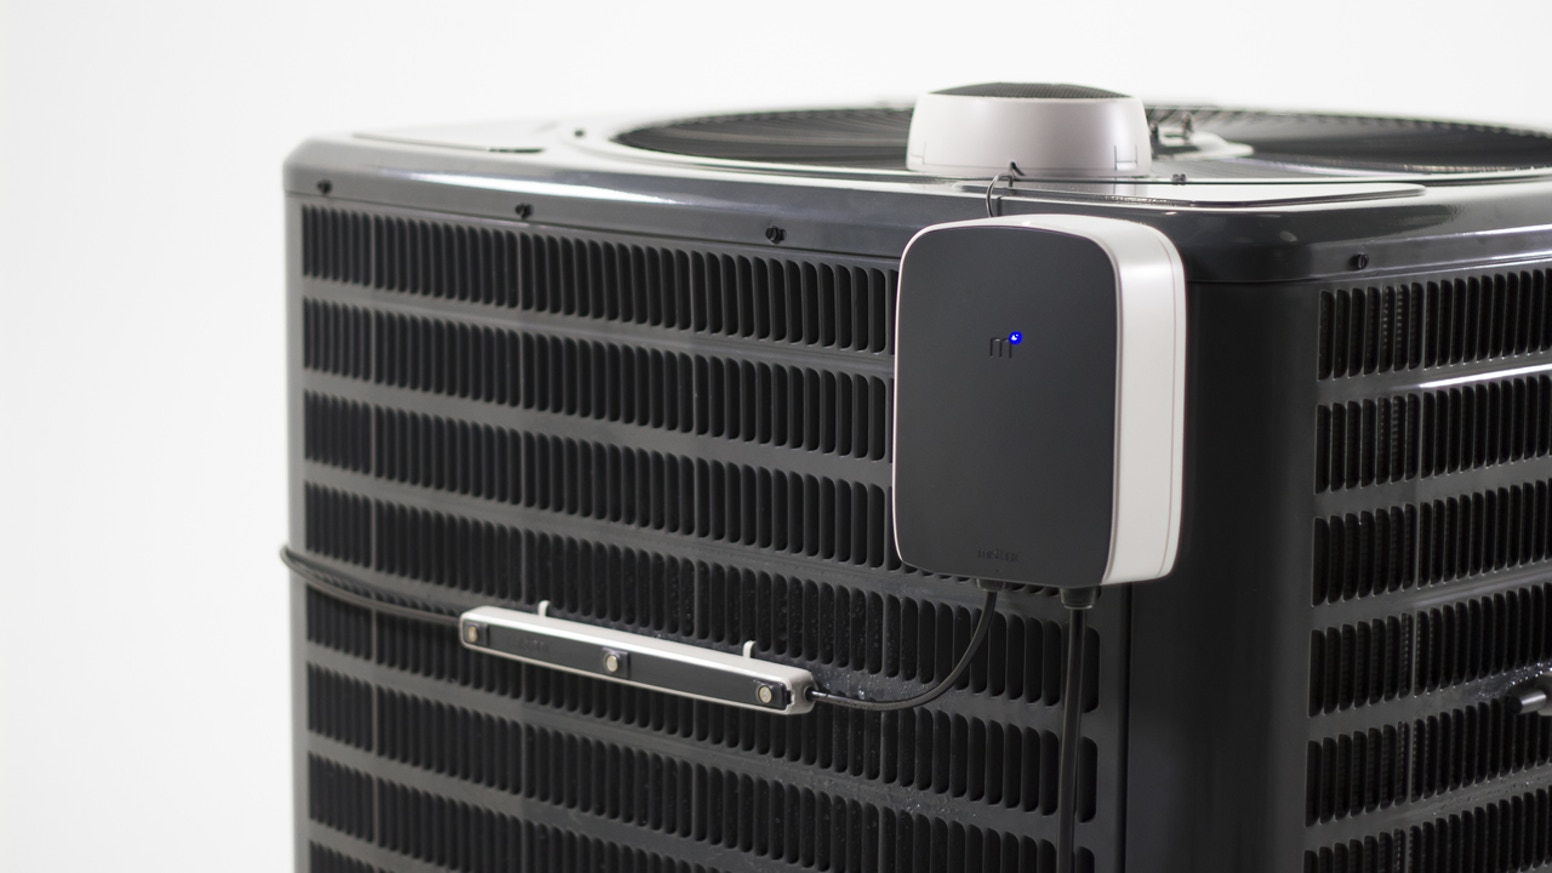 Mistbox is a connected device that pre-cools intake air to boost your AC's efficiency by 30%. Save money. Save the planet.